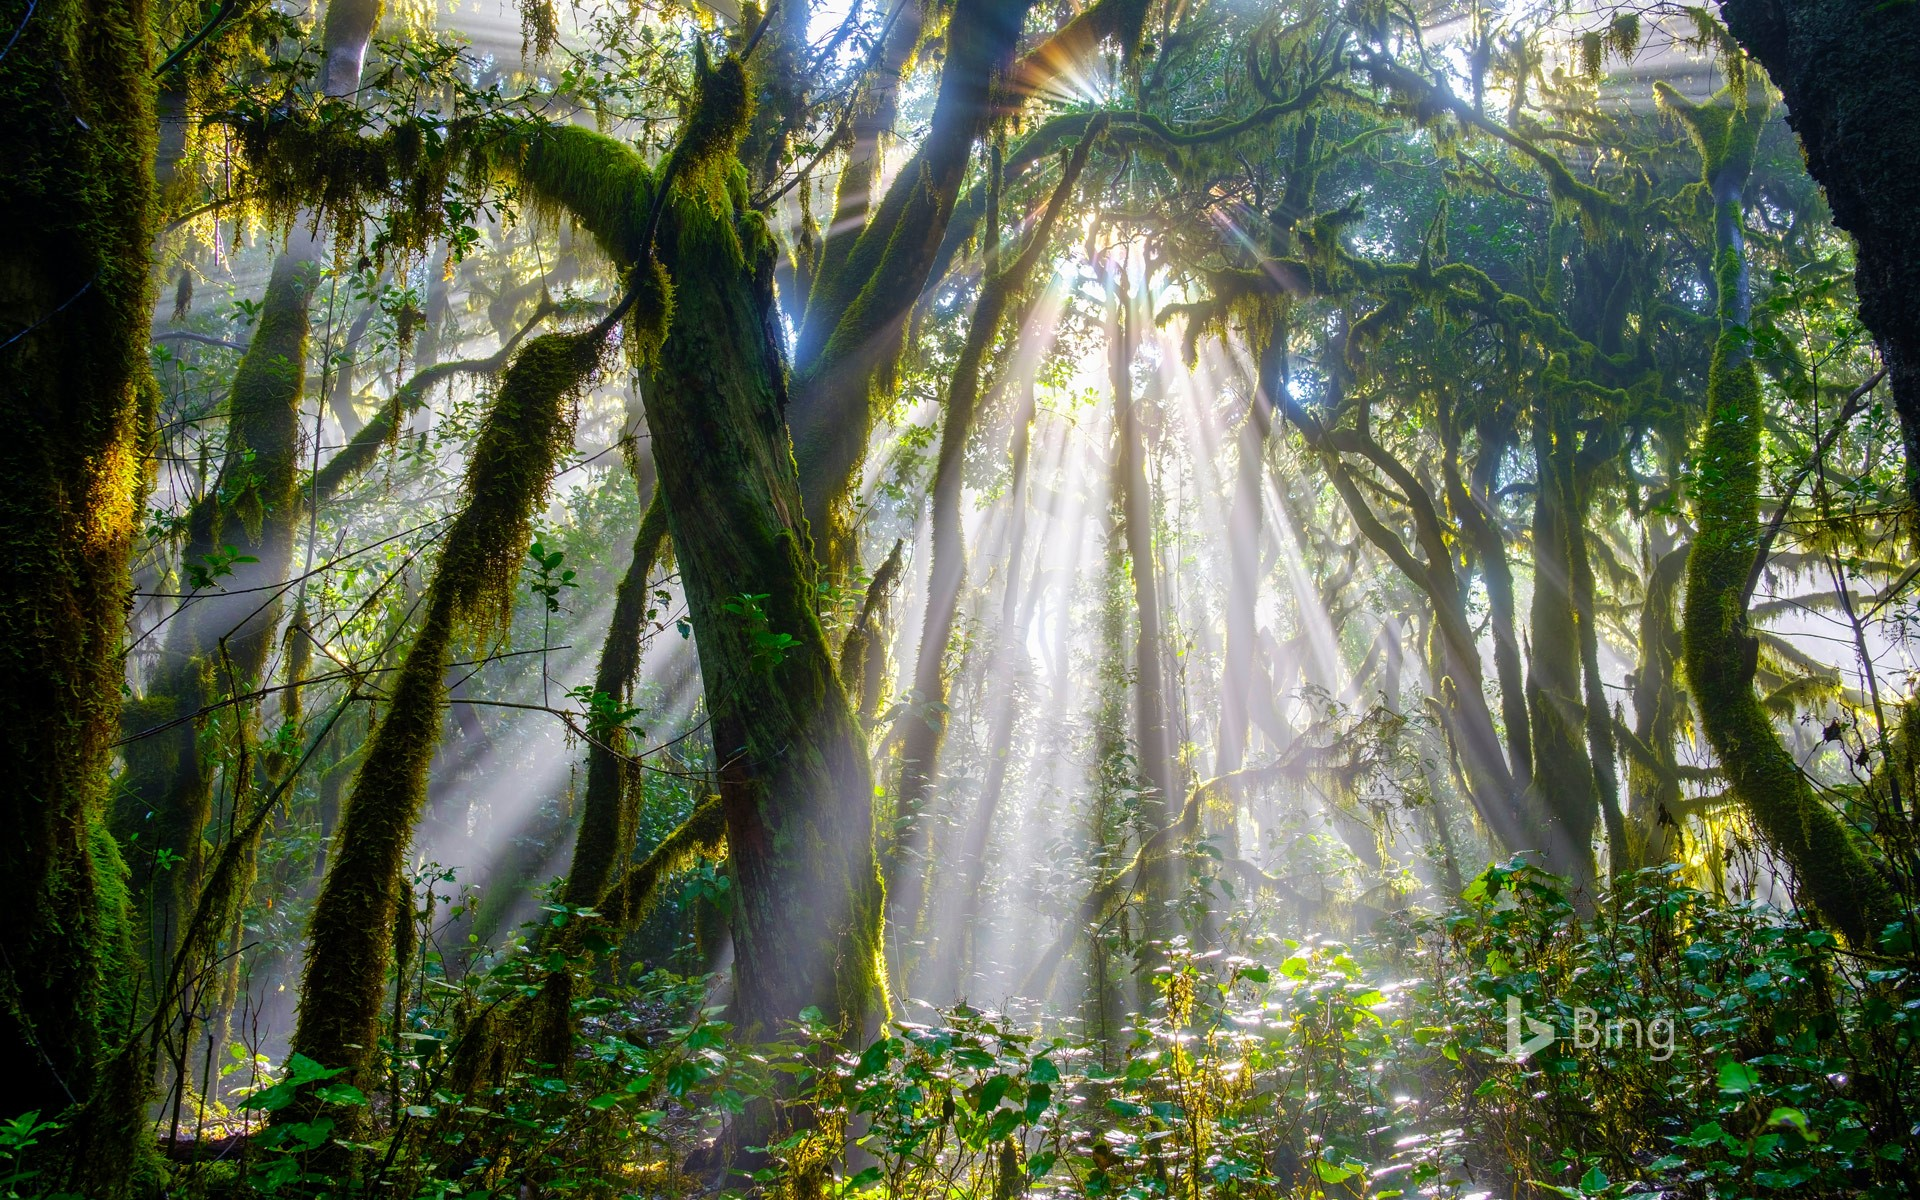 Forest in Garajonay National Park, La Gomera, Spain